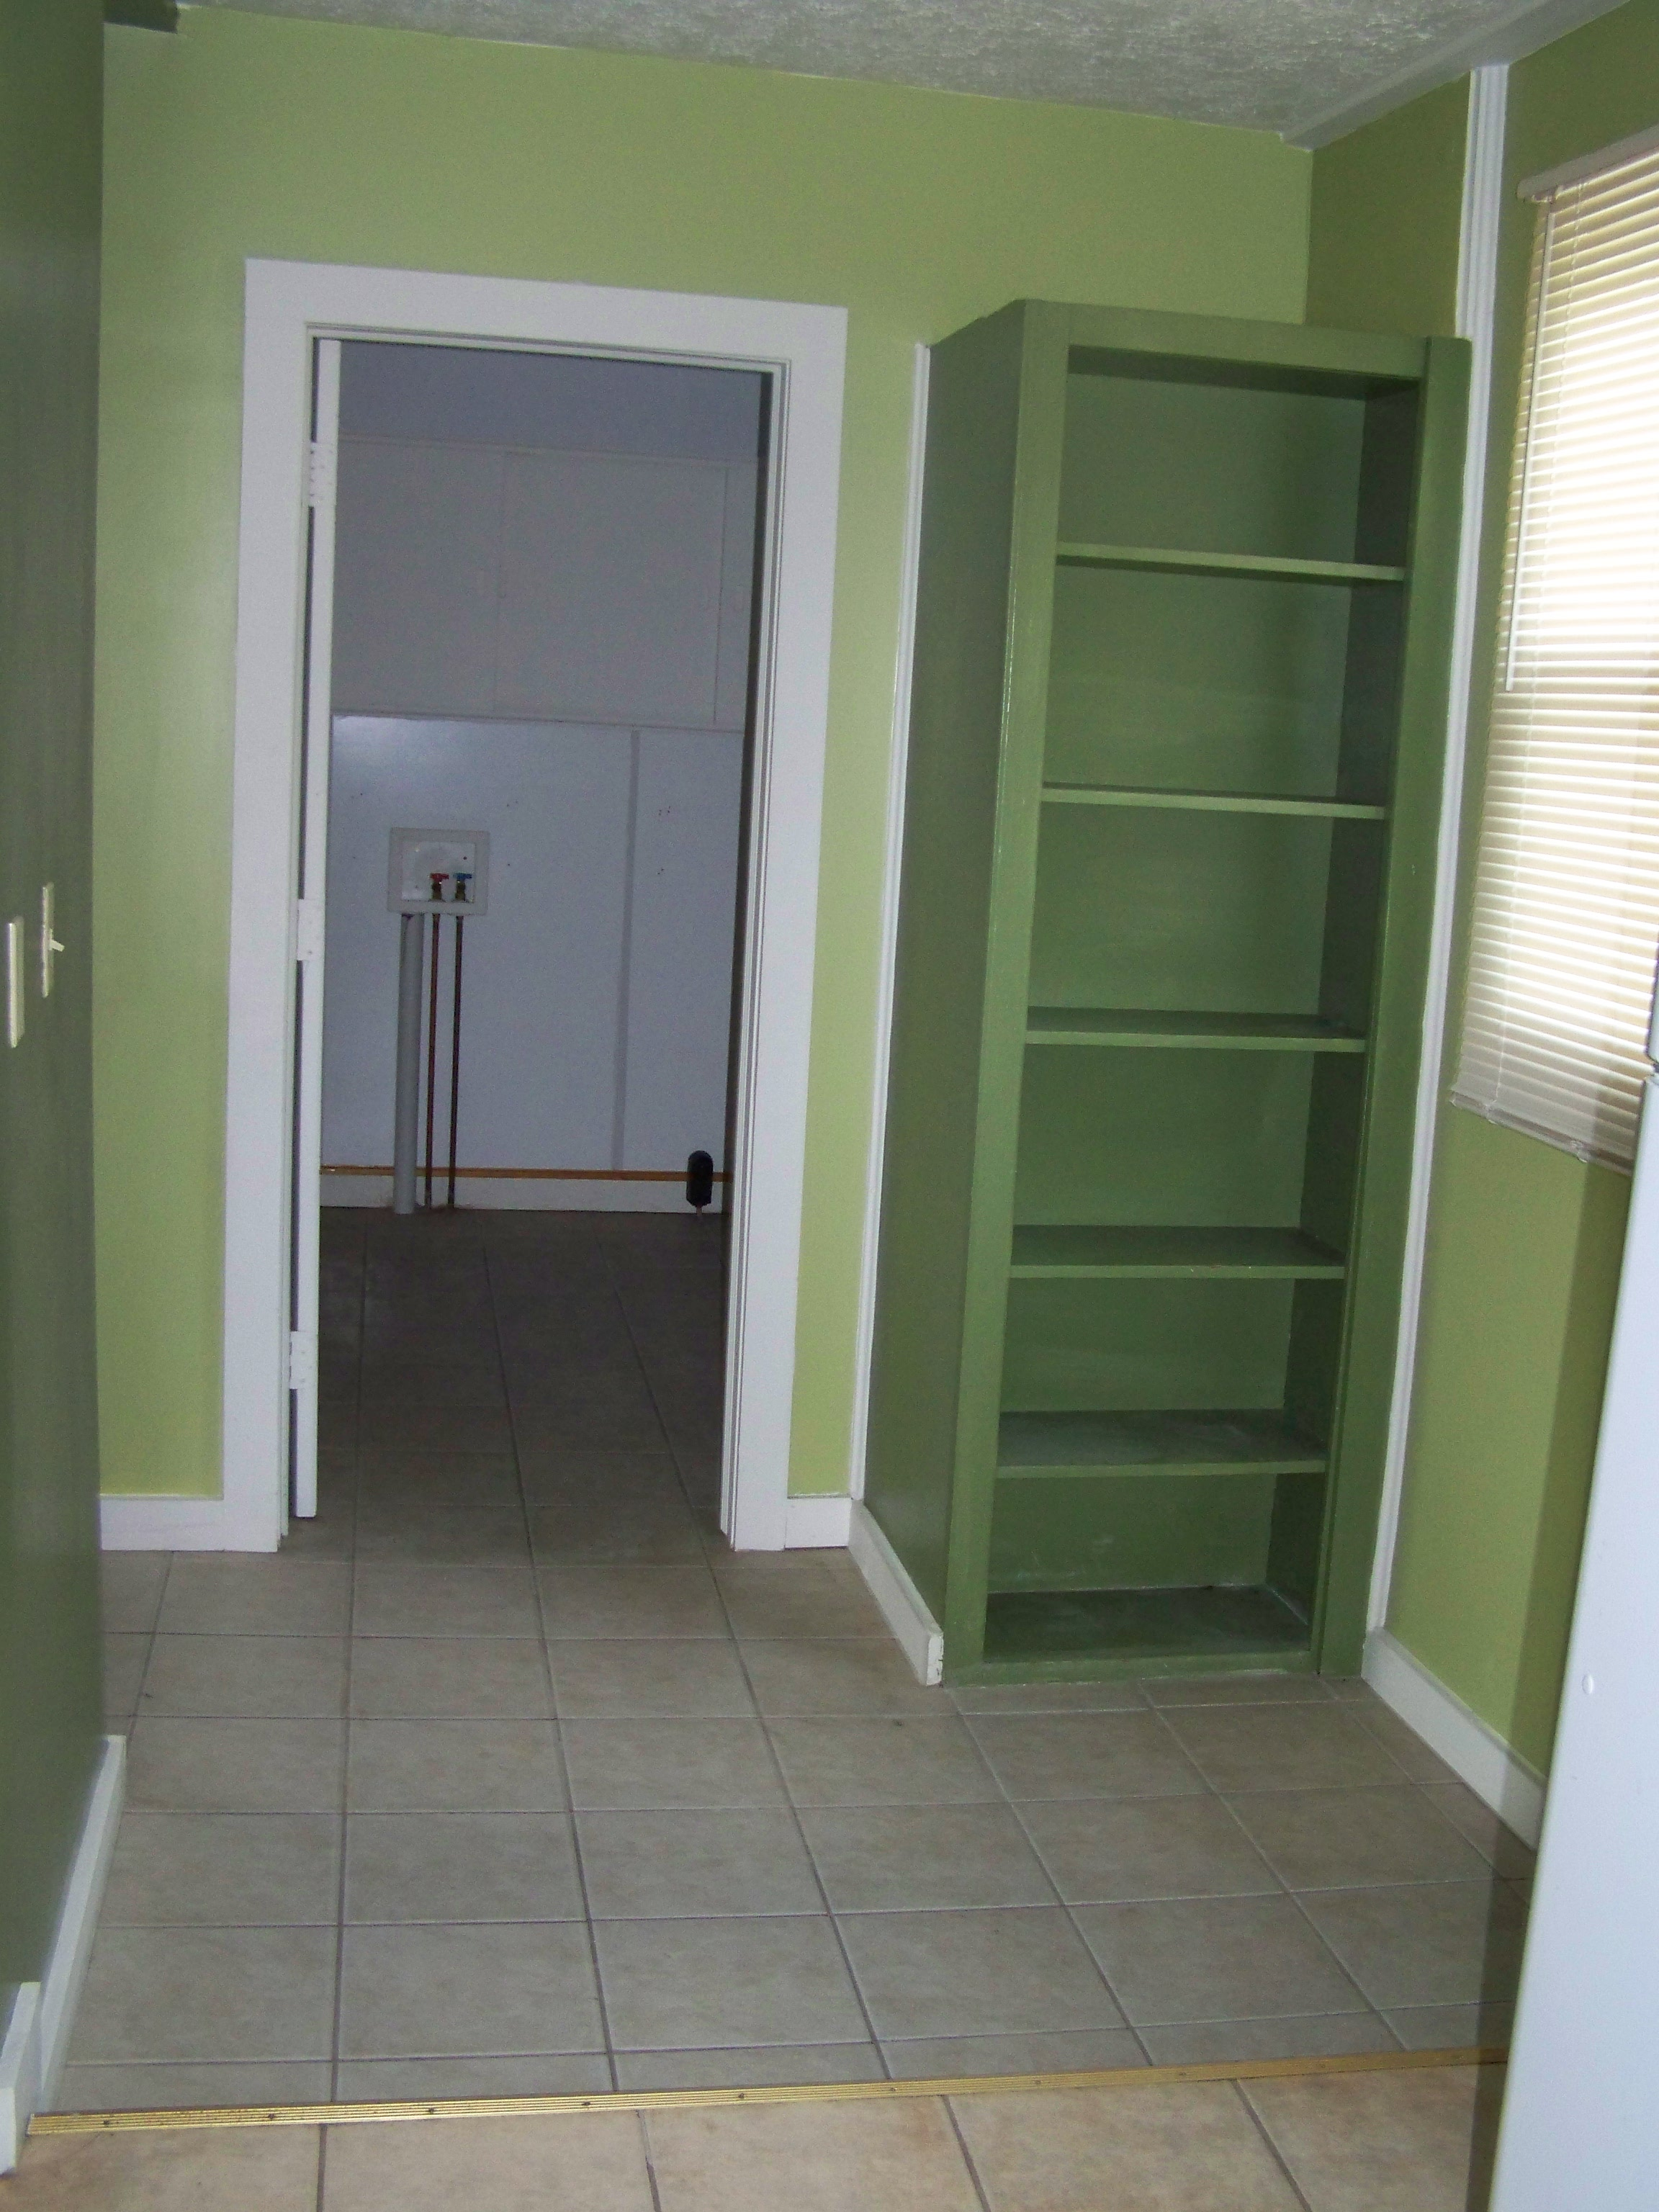 Kitchen Entry & Laundry Room - The day I got my keys (2011)